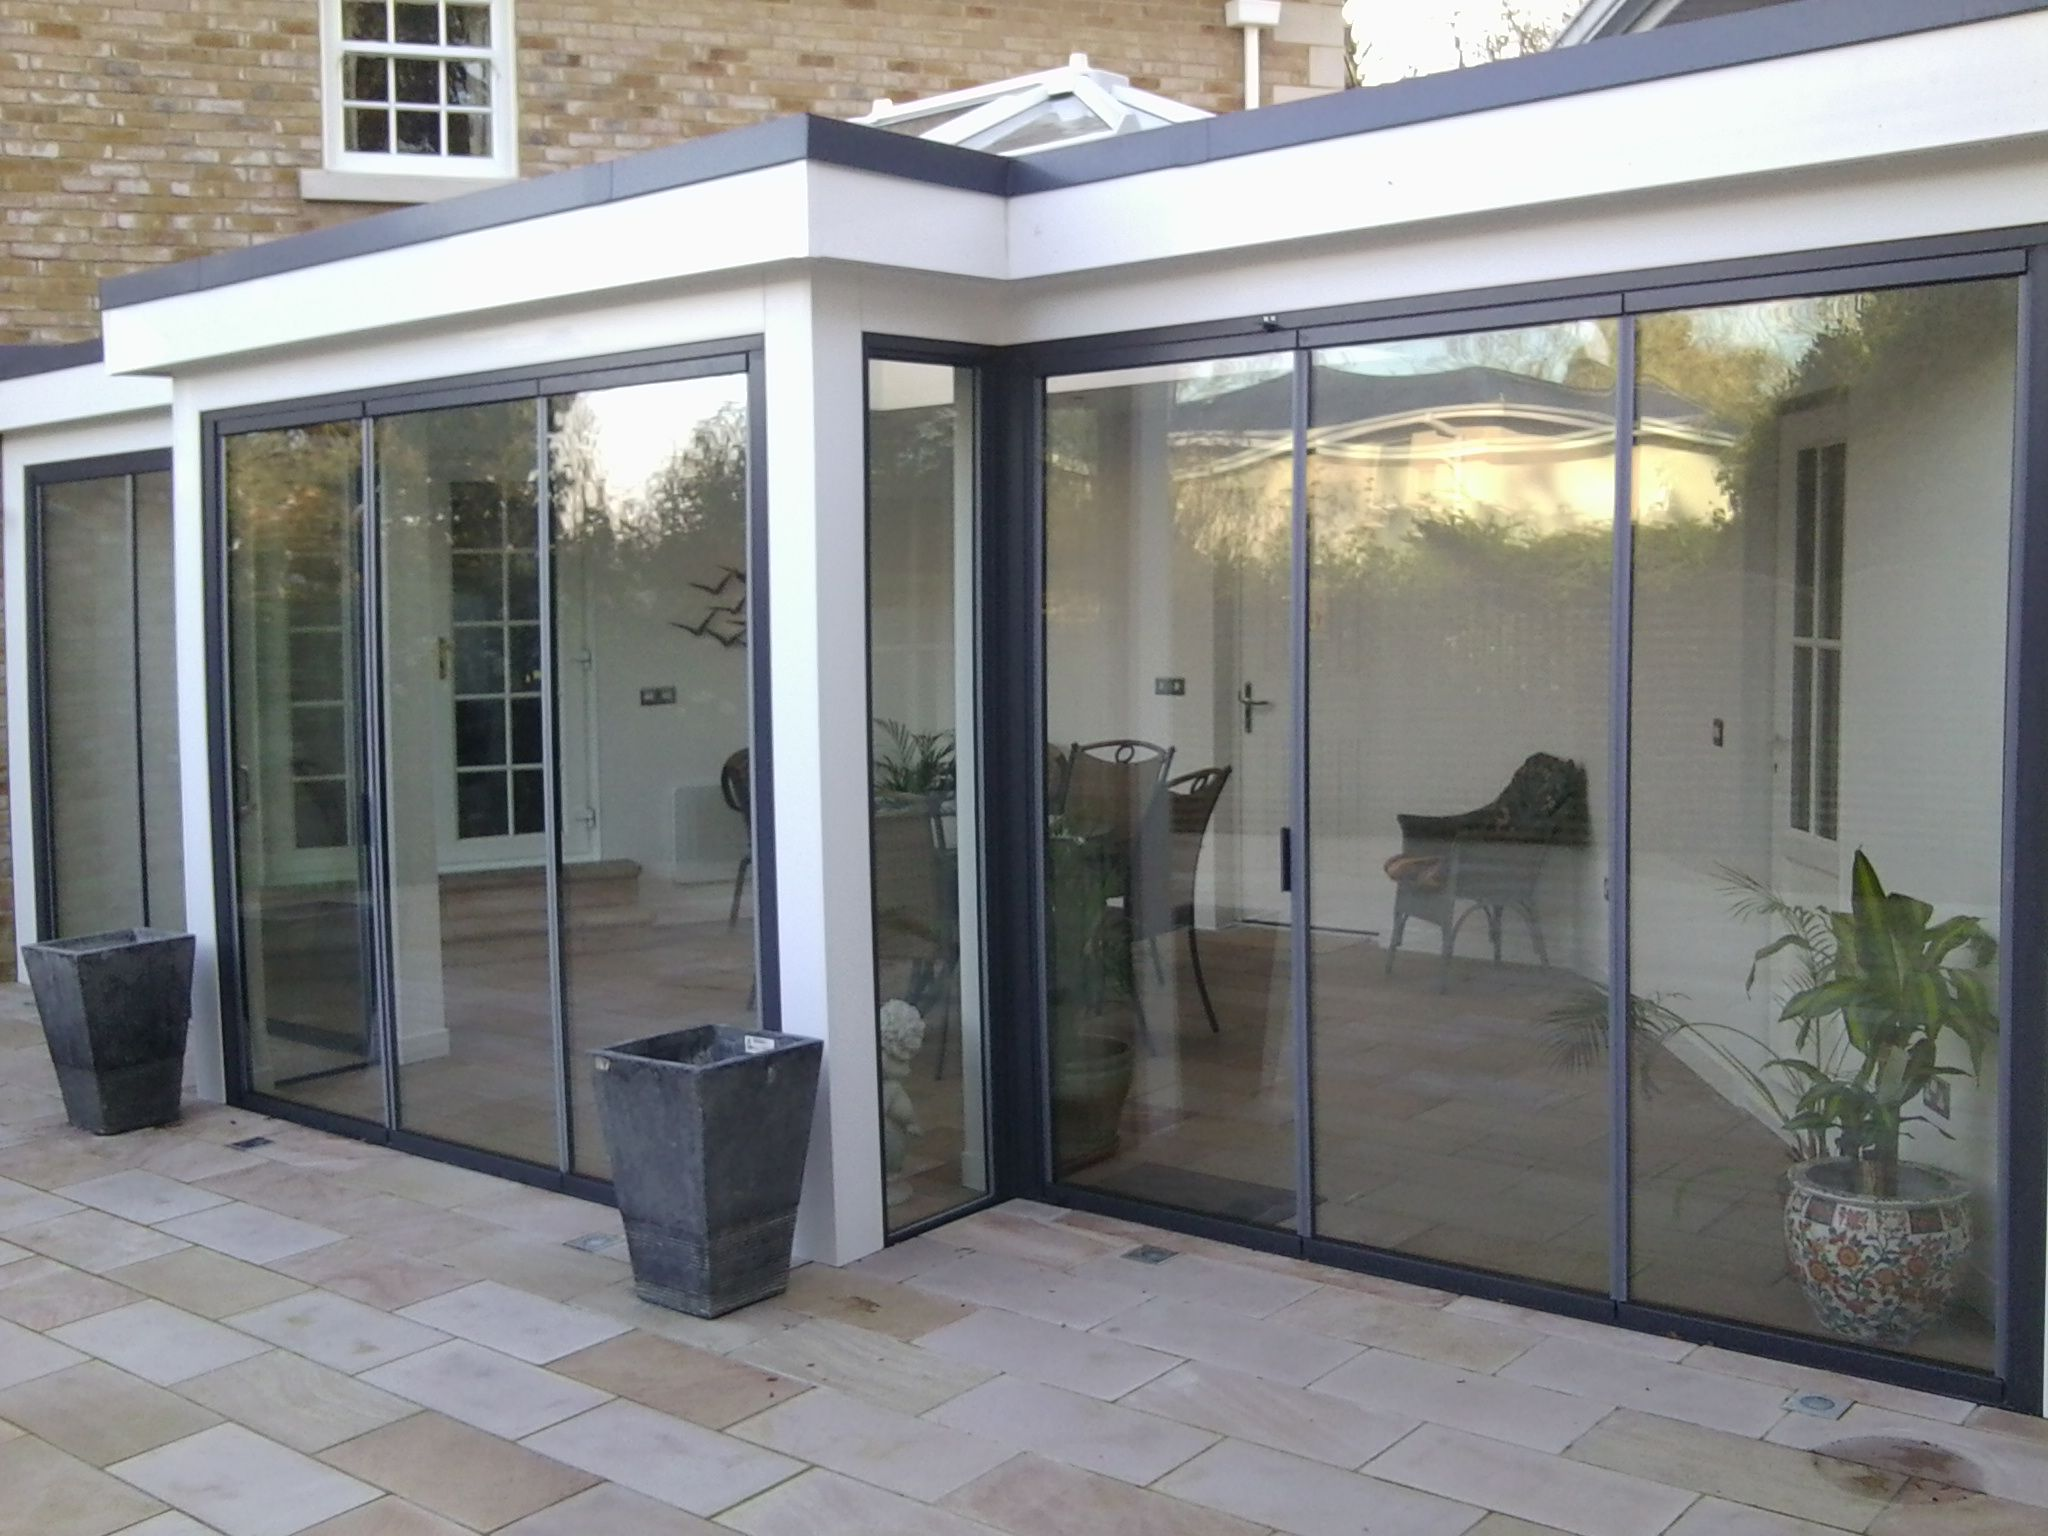 Ultraslim Are Fully Retractable Patio Doors With Slim 19